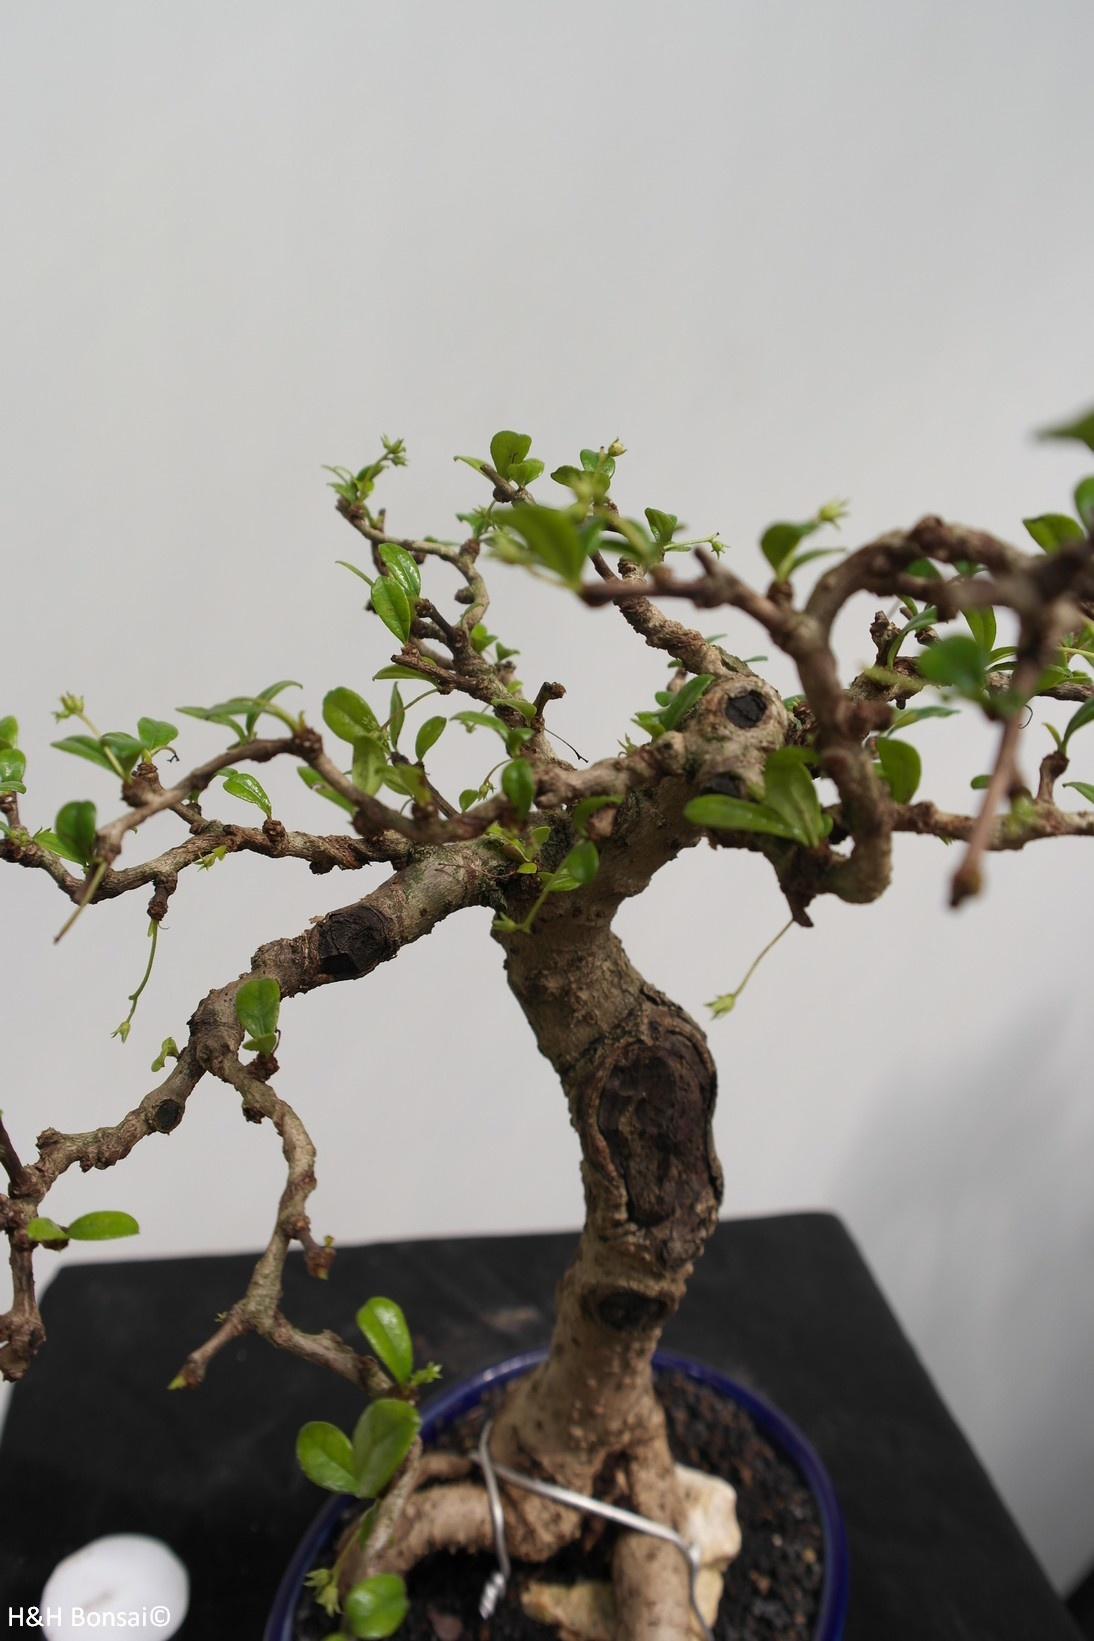 Bonsai Fukien Tea, Carmona macrophylla, no. 7864